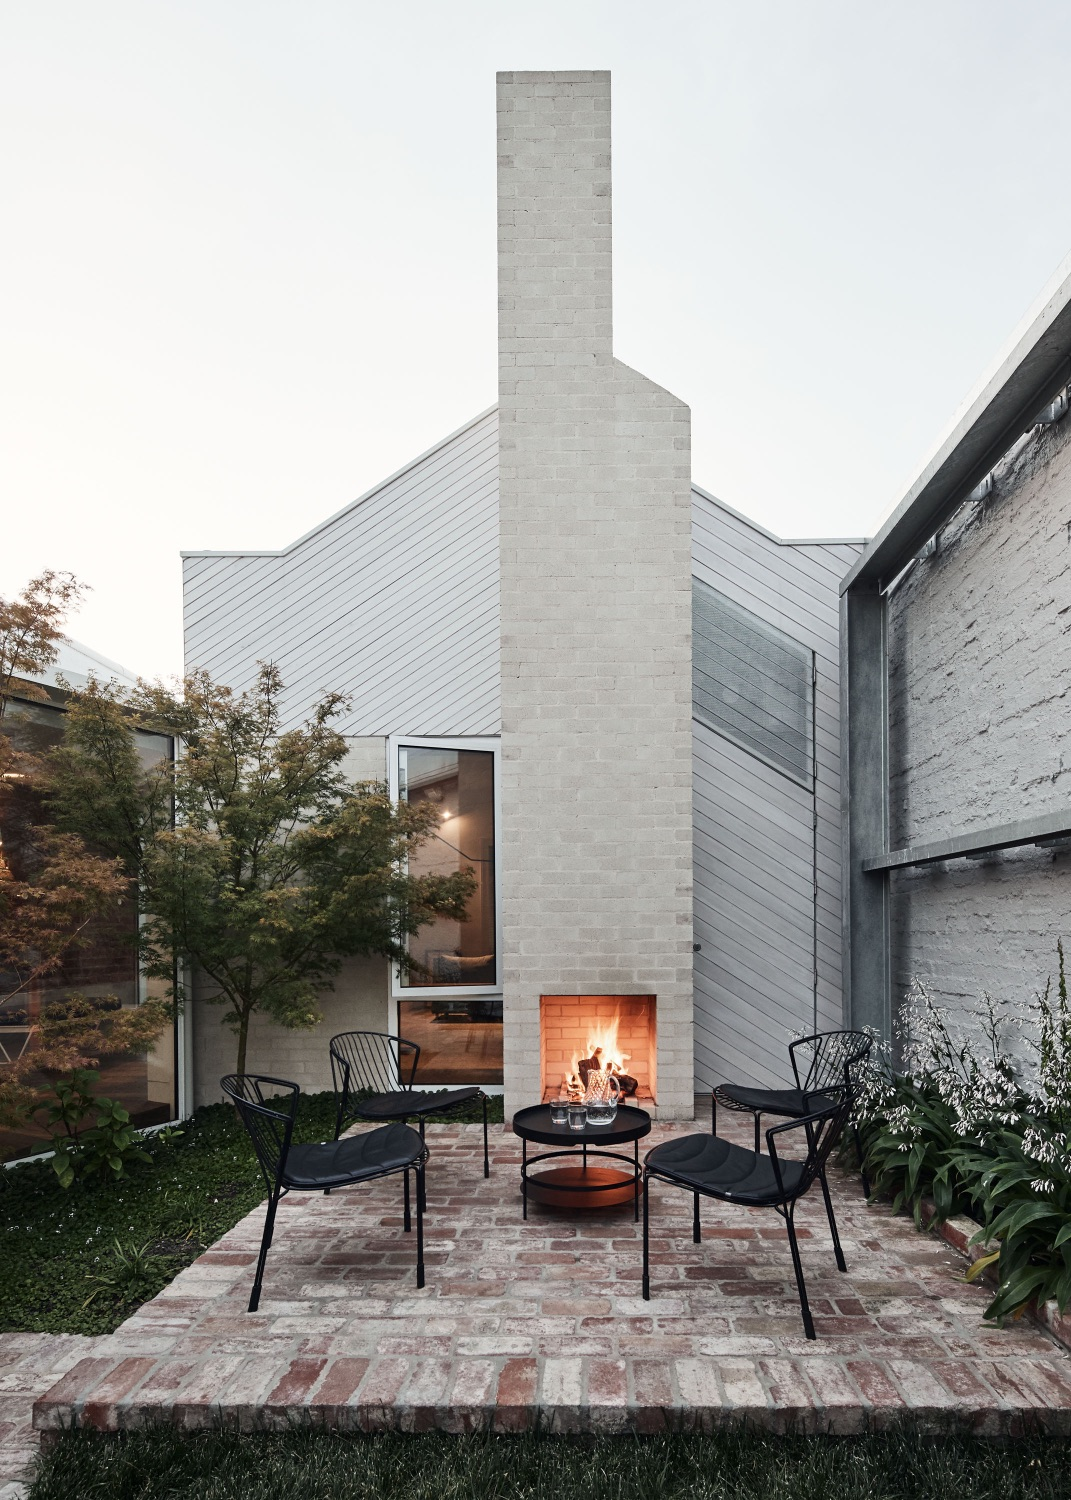 18_RaeRae House_Austin Maynard Architects_Inspirationist